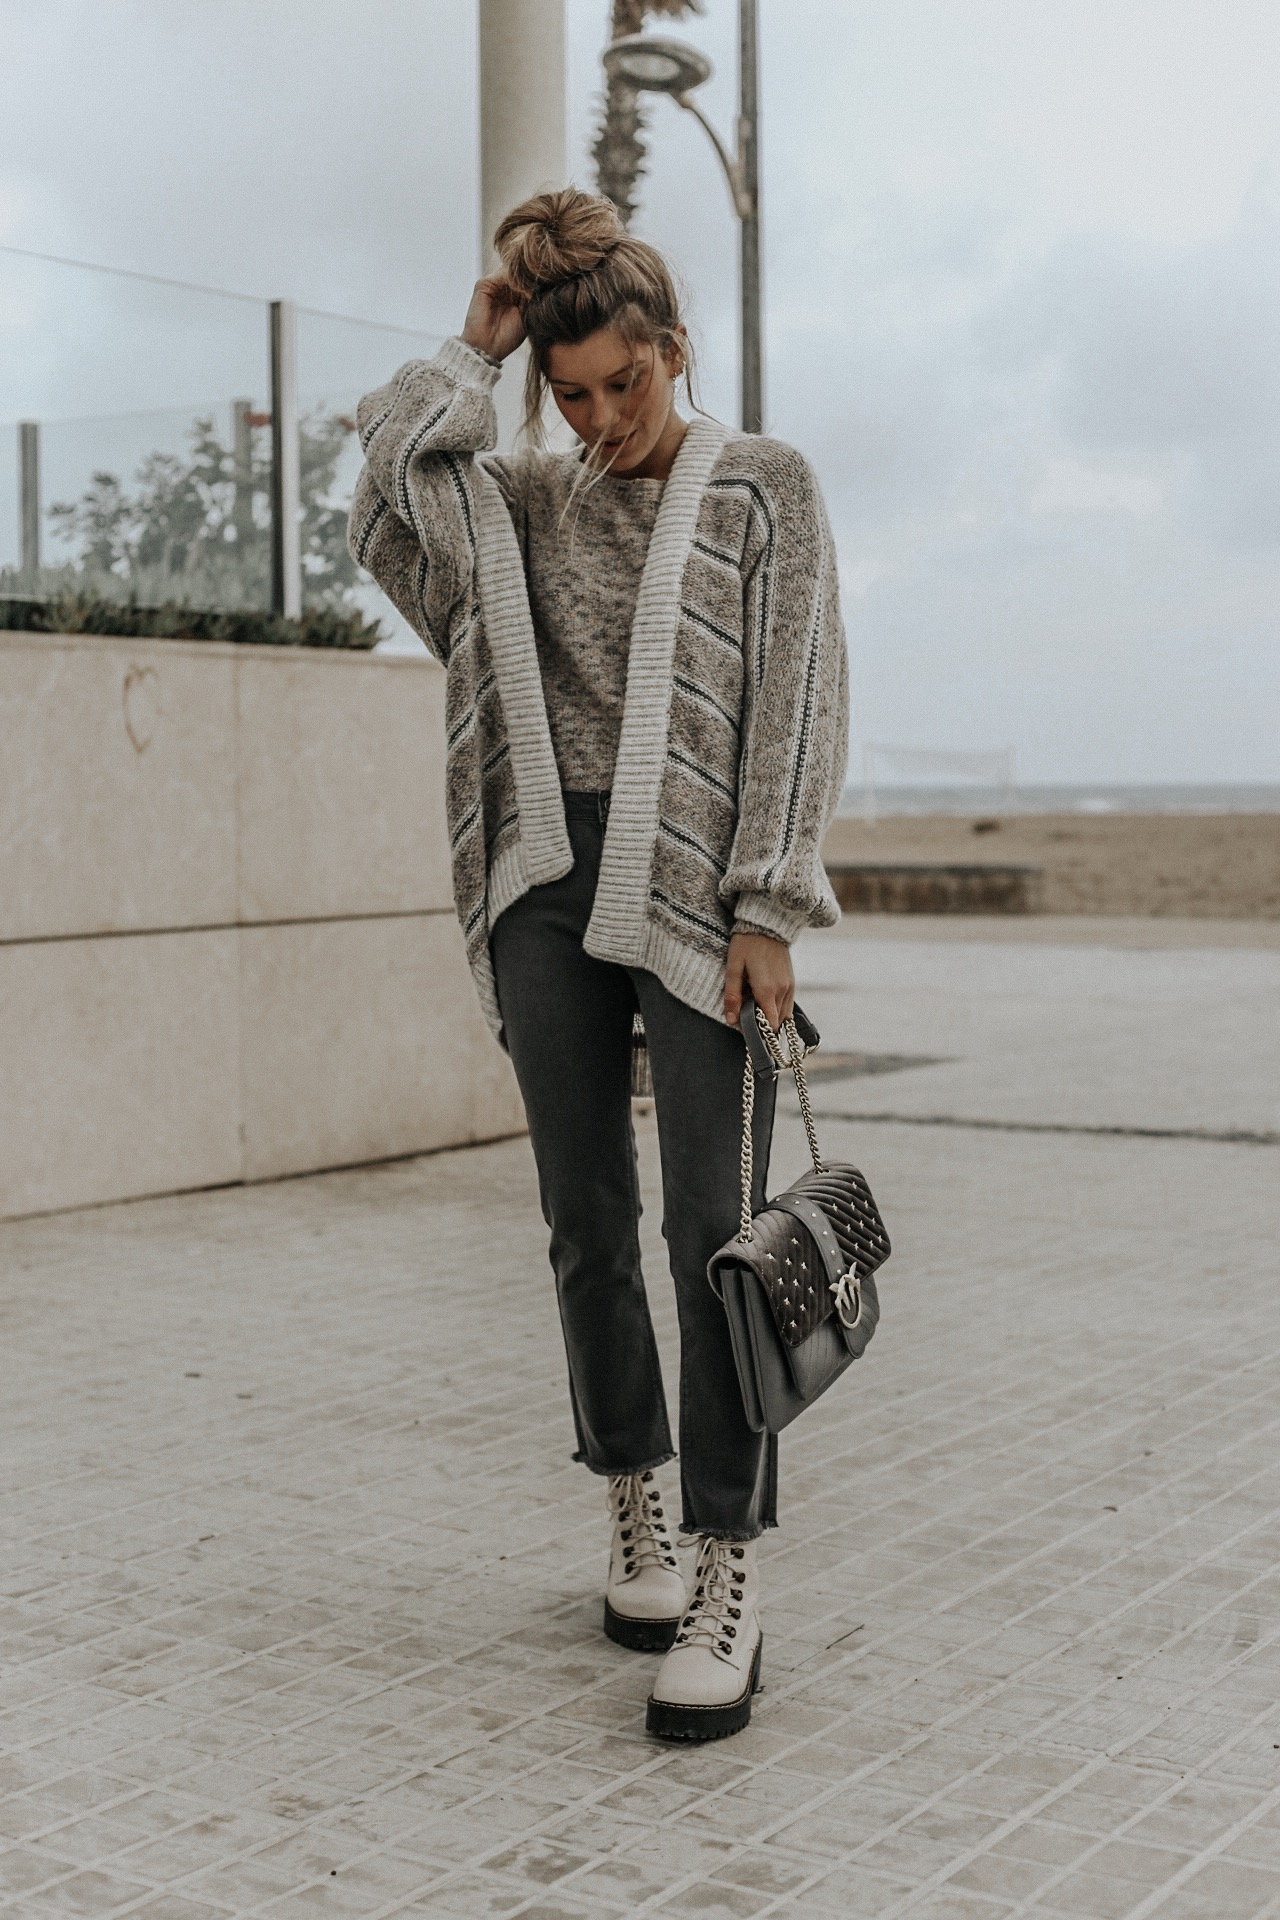 Looking for new outfit ideas? by @claudiasorianomunoz